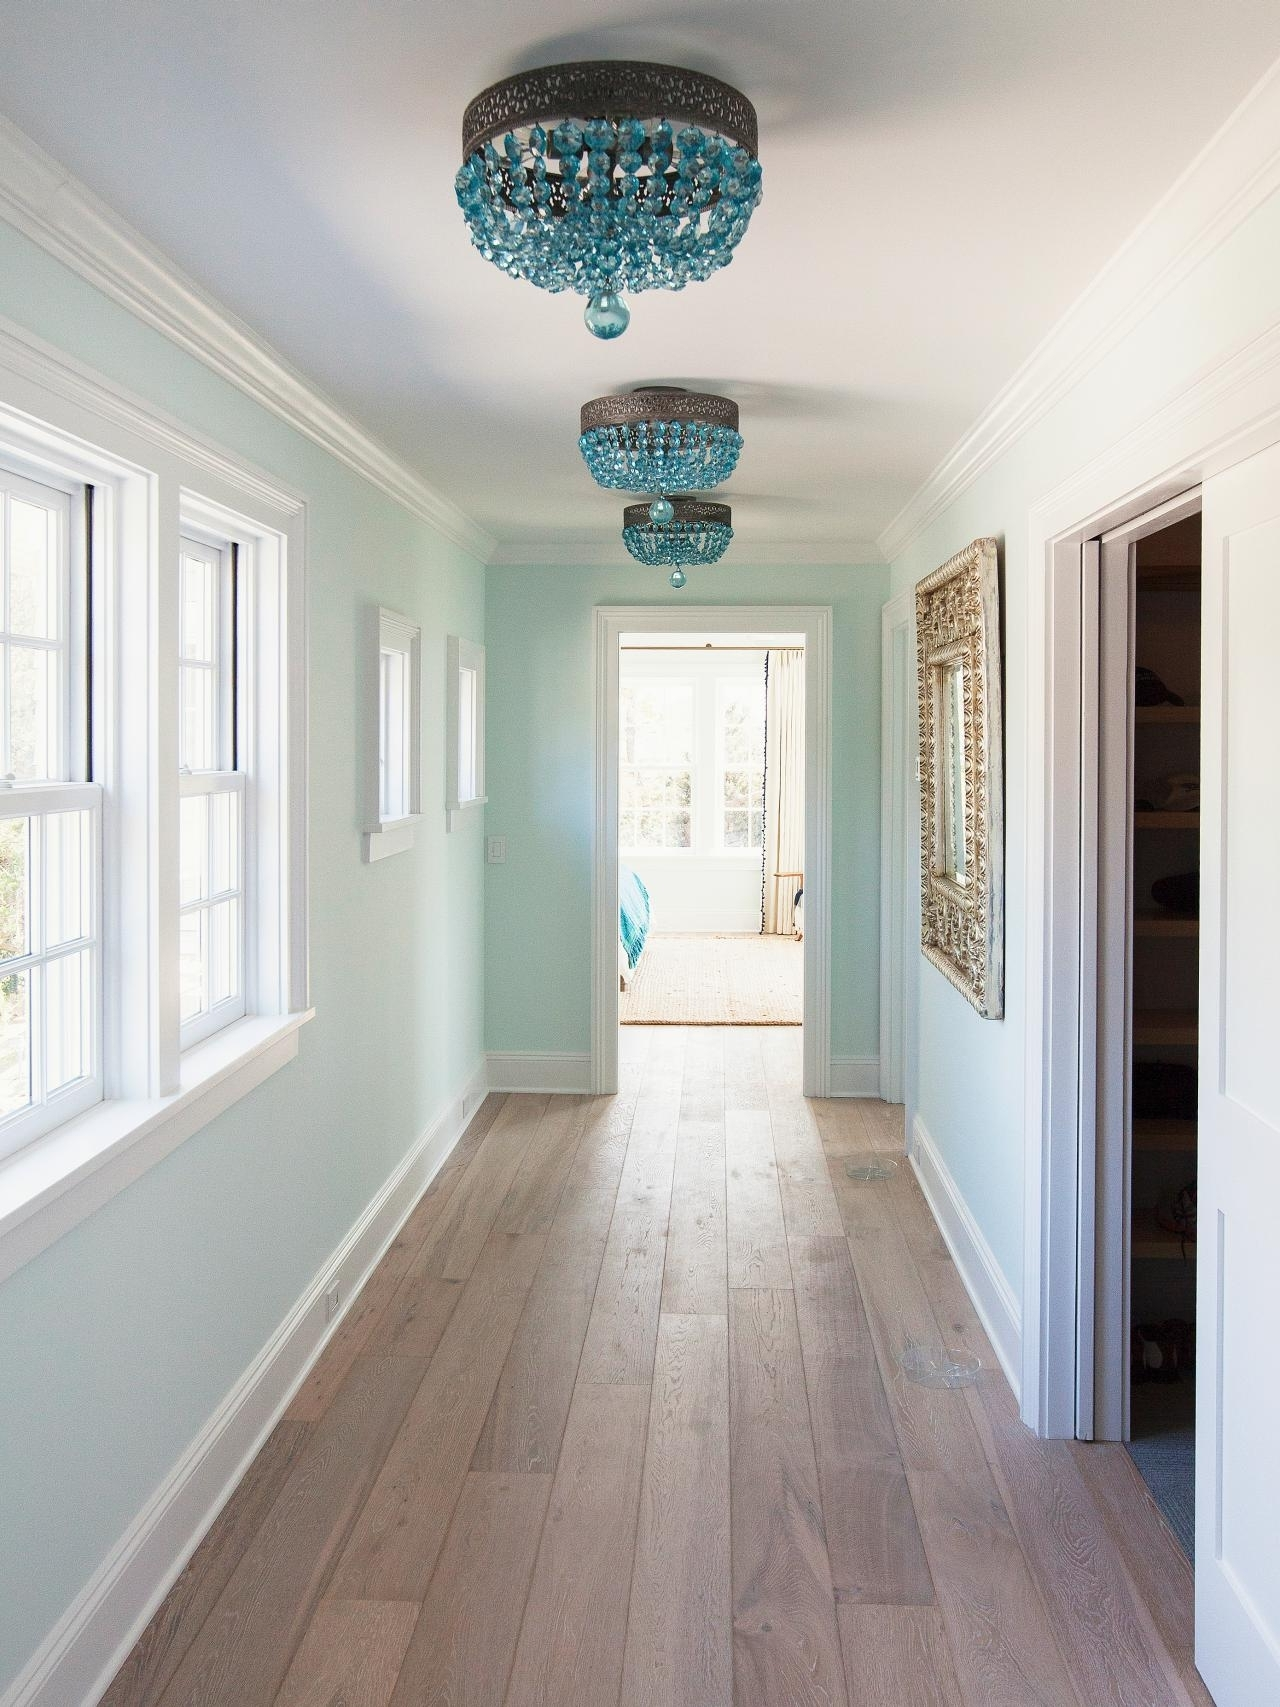 Most Recent Chandeliers For Hallways Within Interior (View 10 of 15)